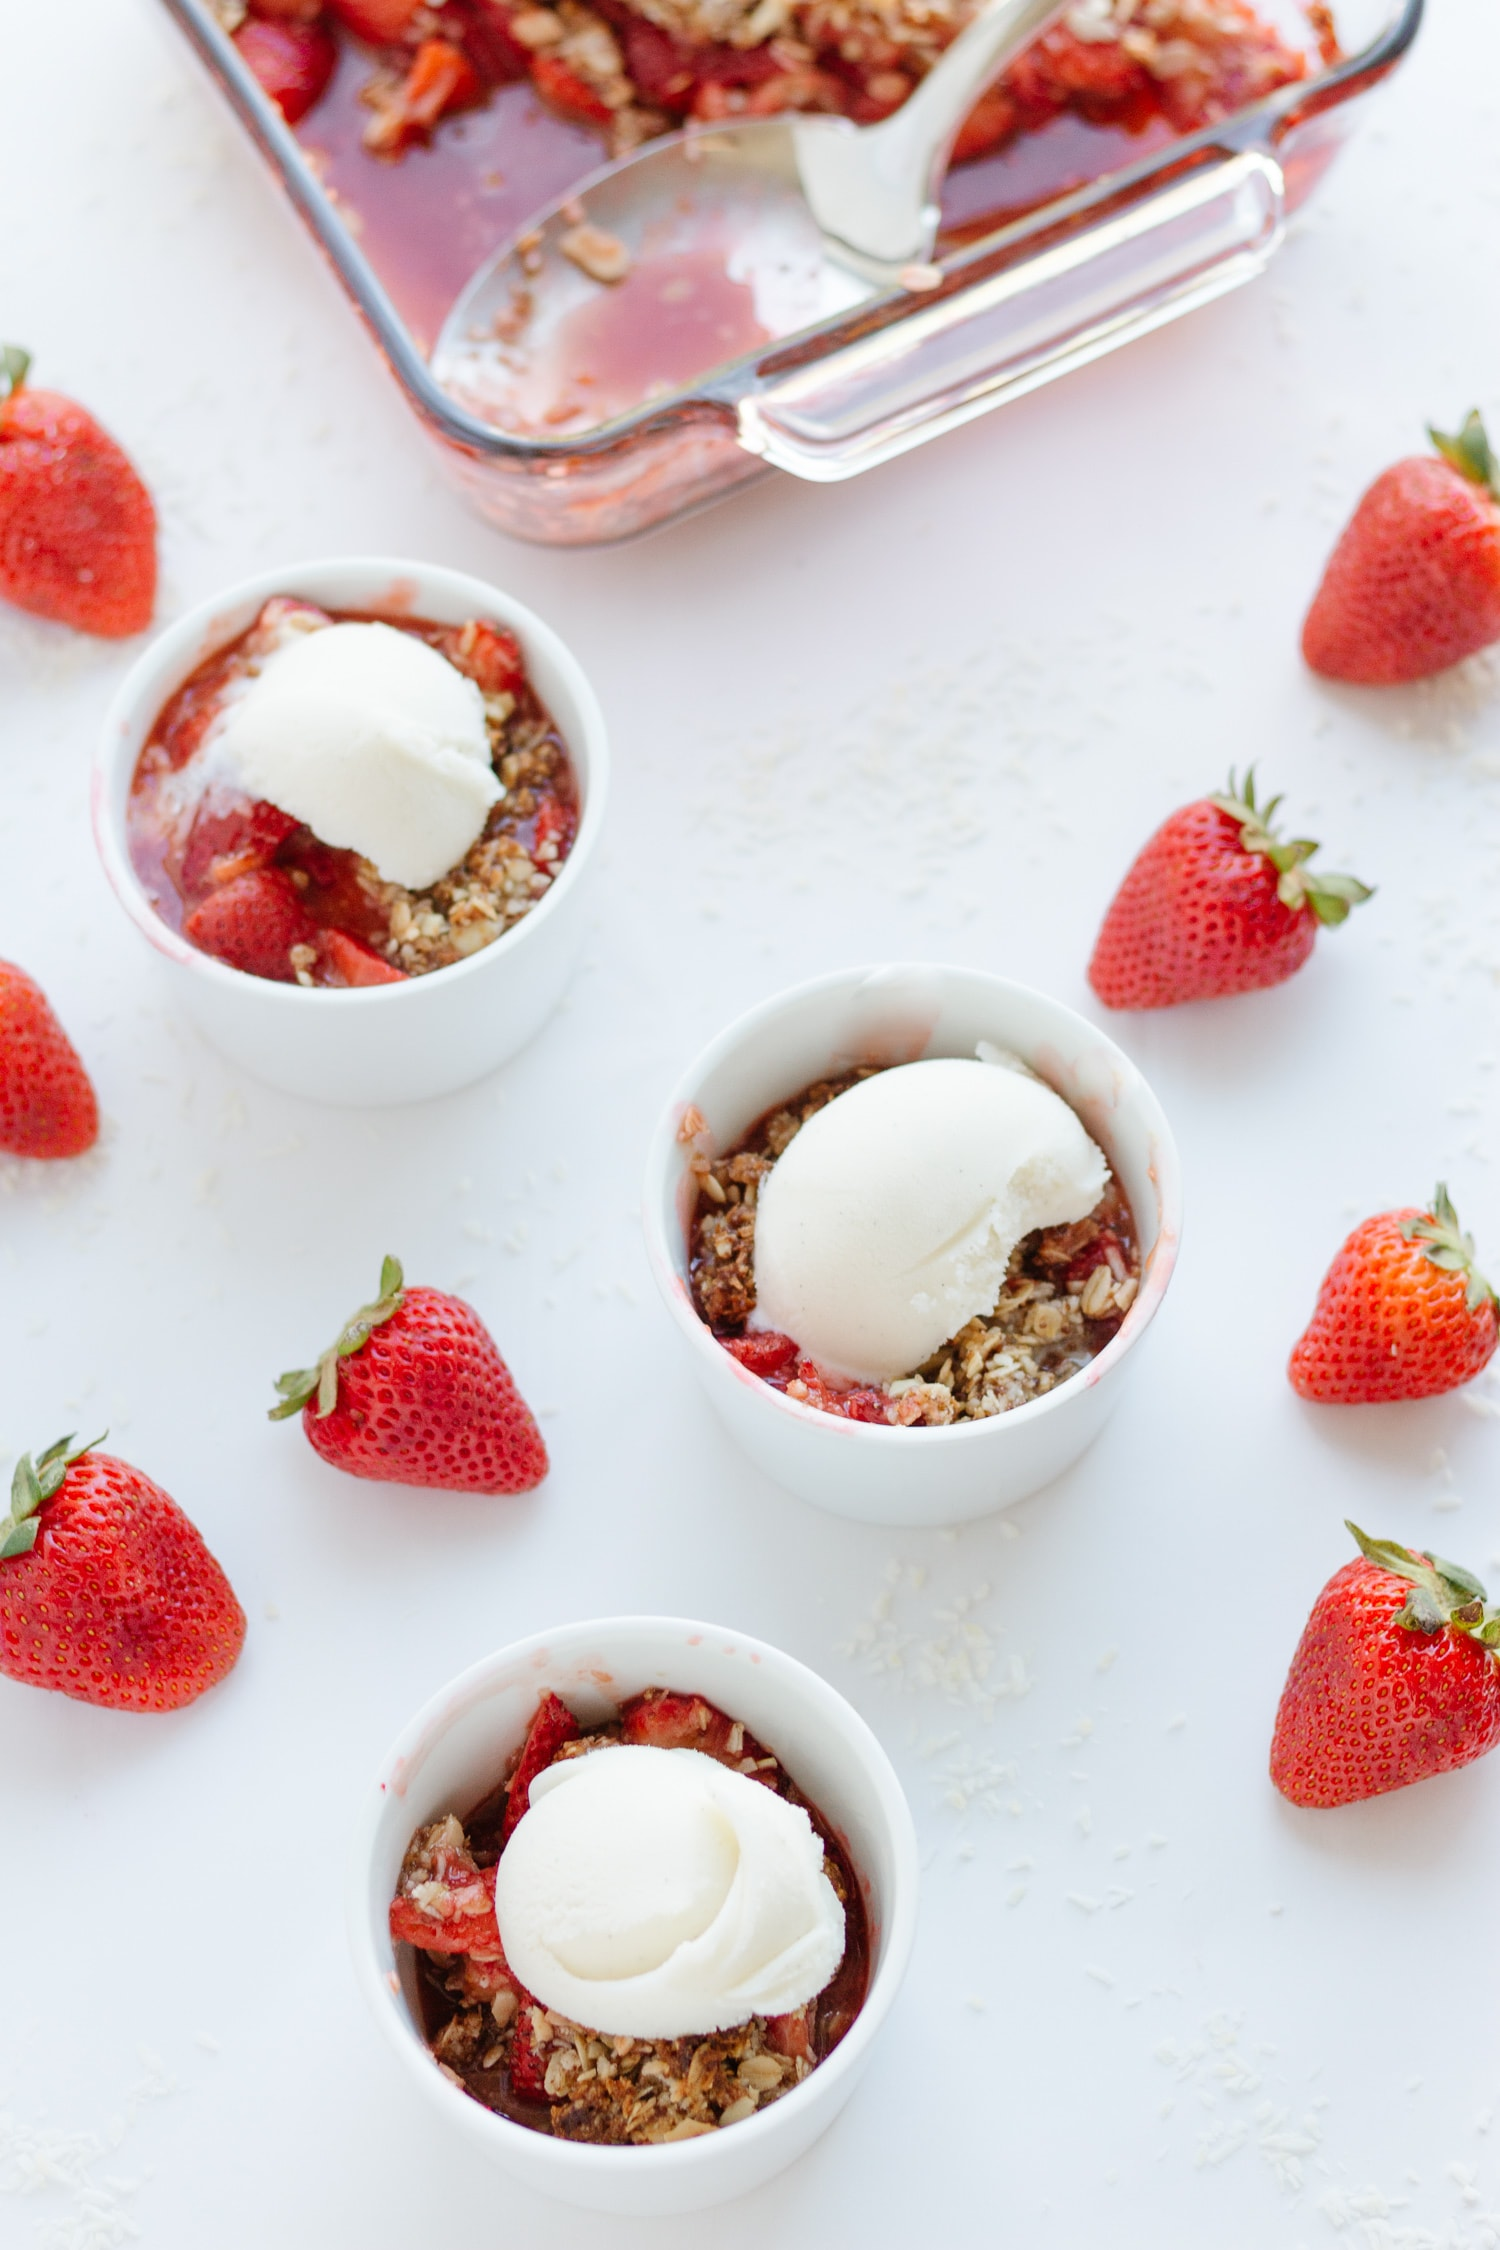 Three ramekins of strawberry coconut crisp topped with ice cream  with baking dish in background and strawberries scattered on white surface.